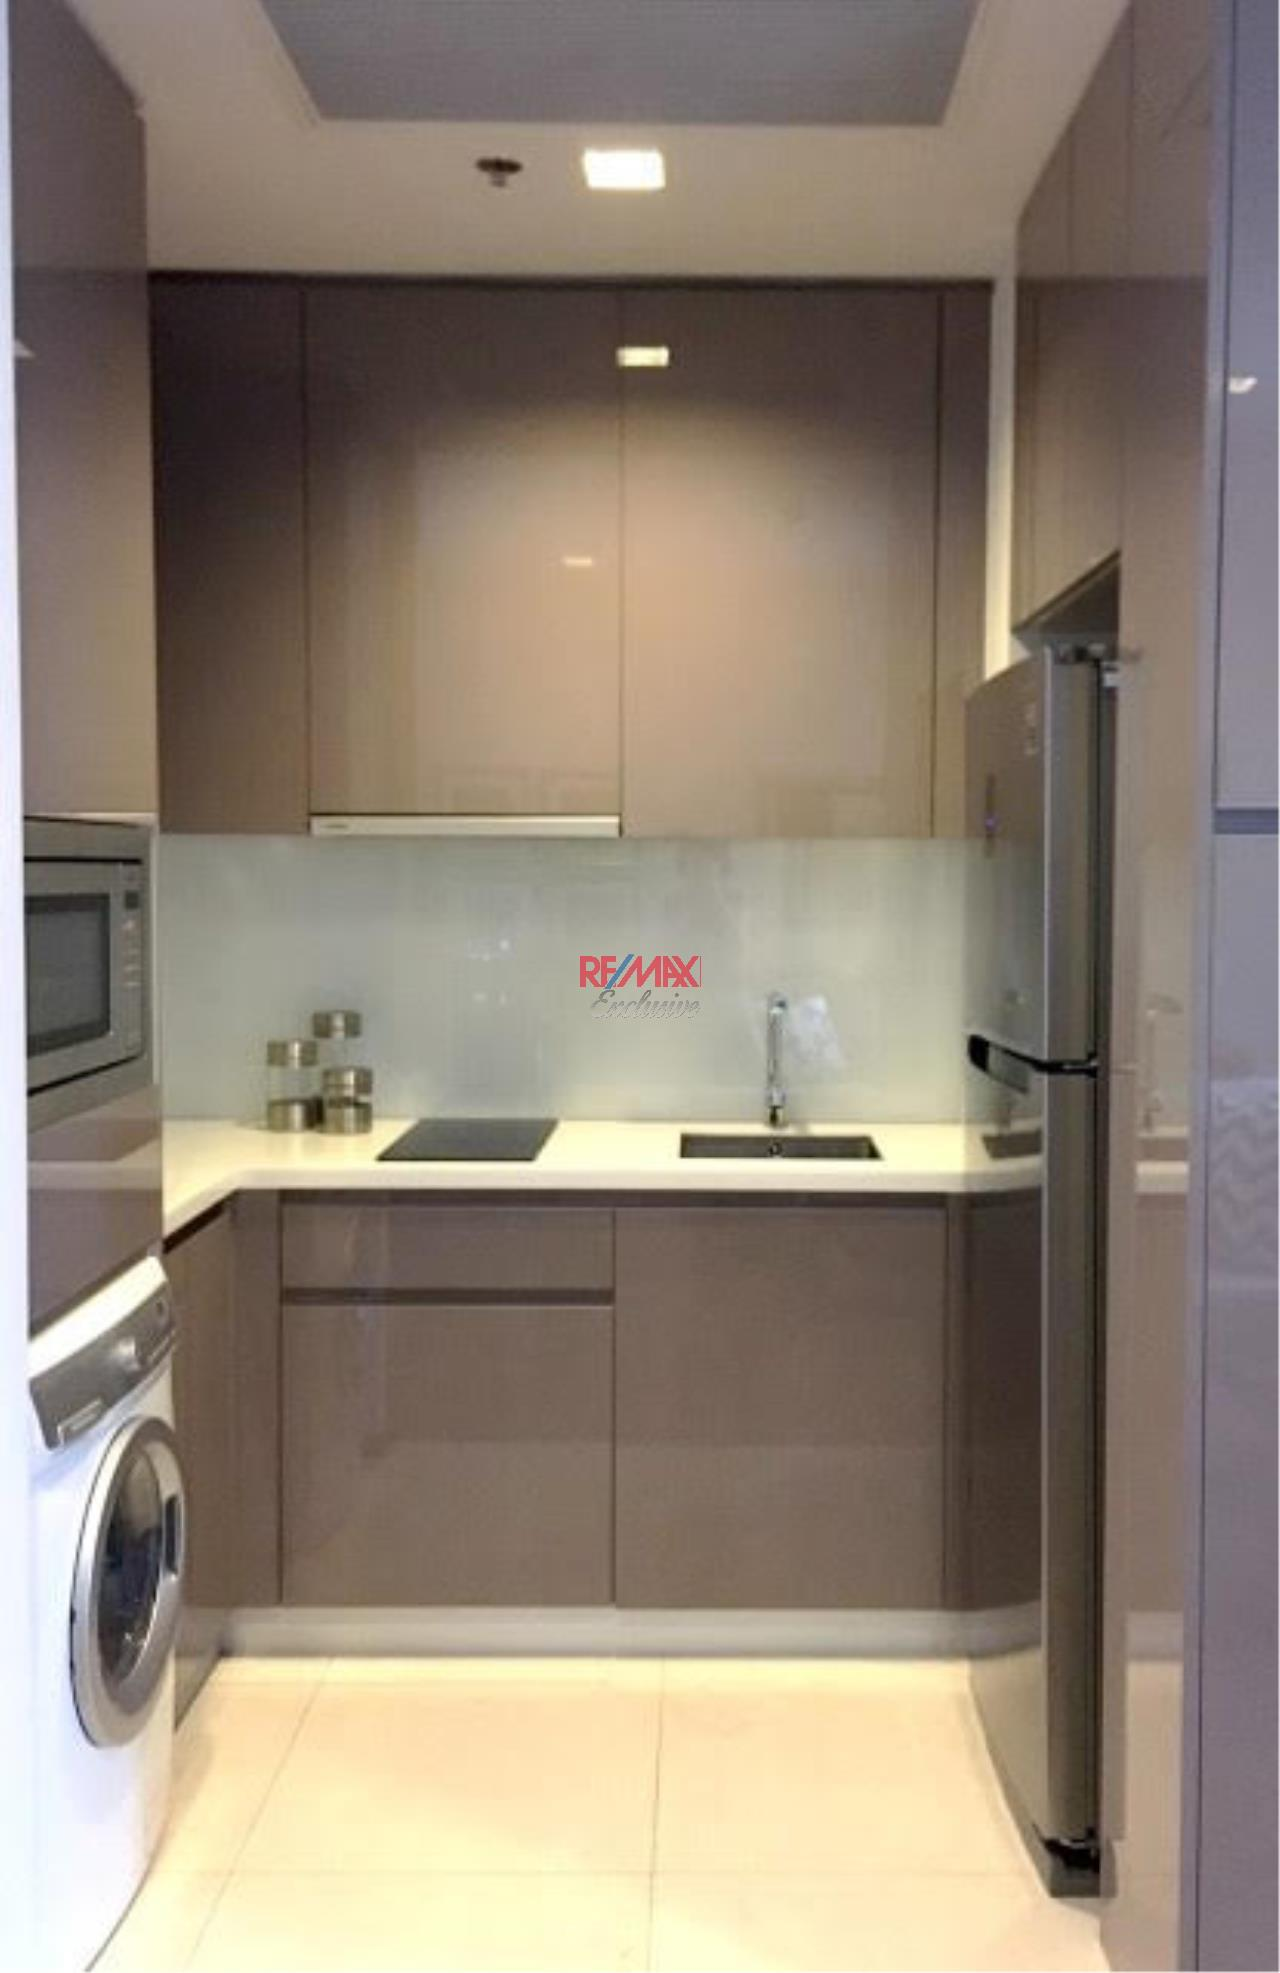 RE/MAX Exclusive Agency's Condominium in town For Rent 40,000 THB  4